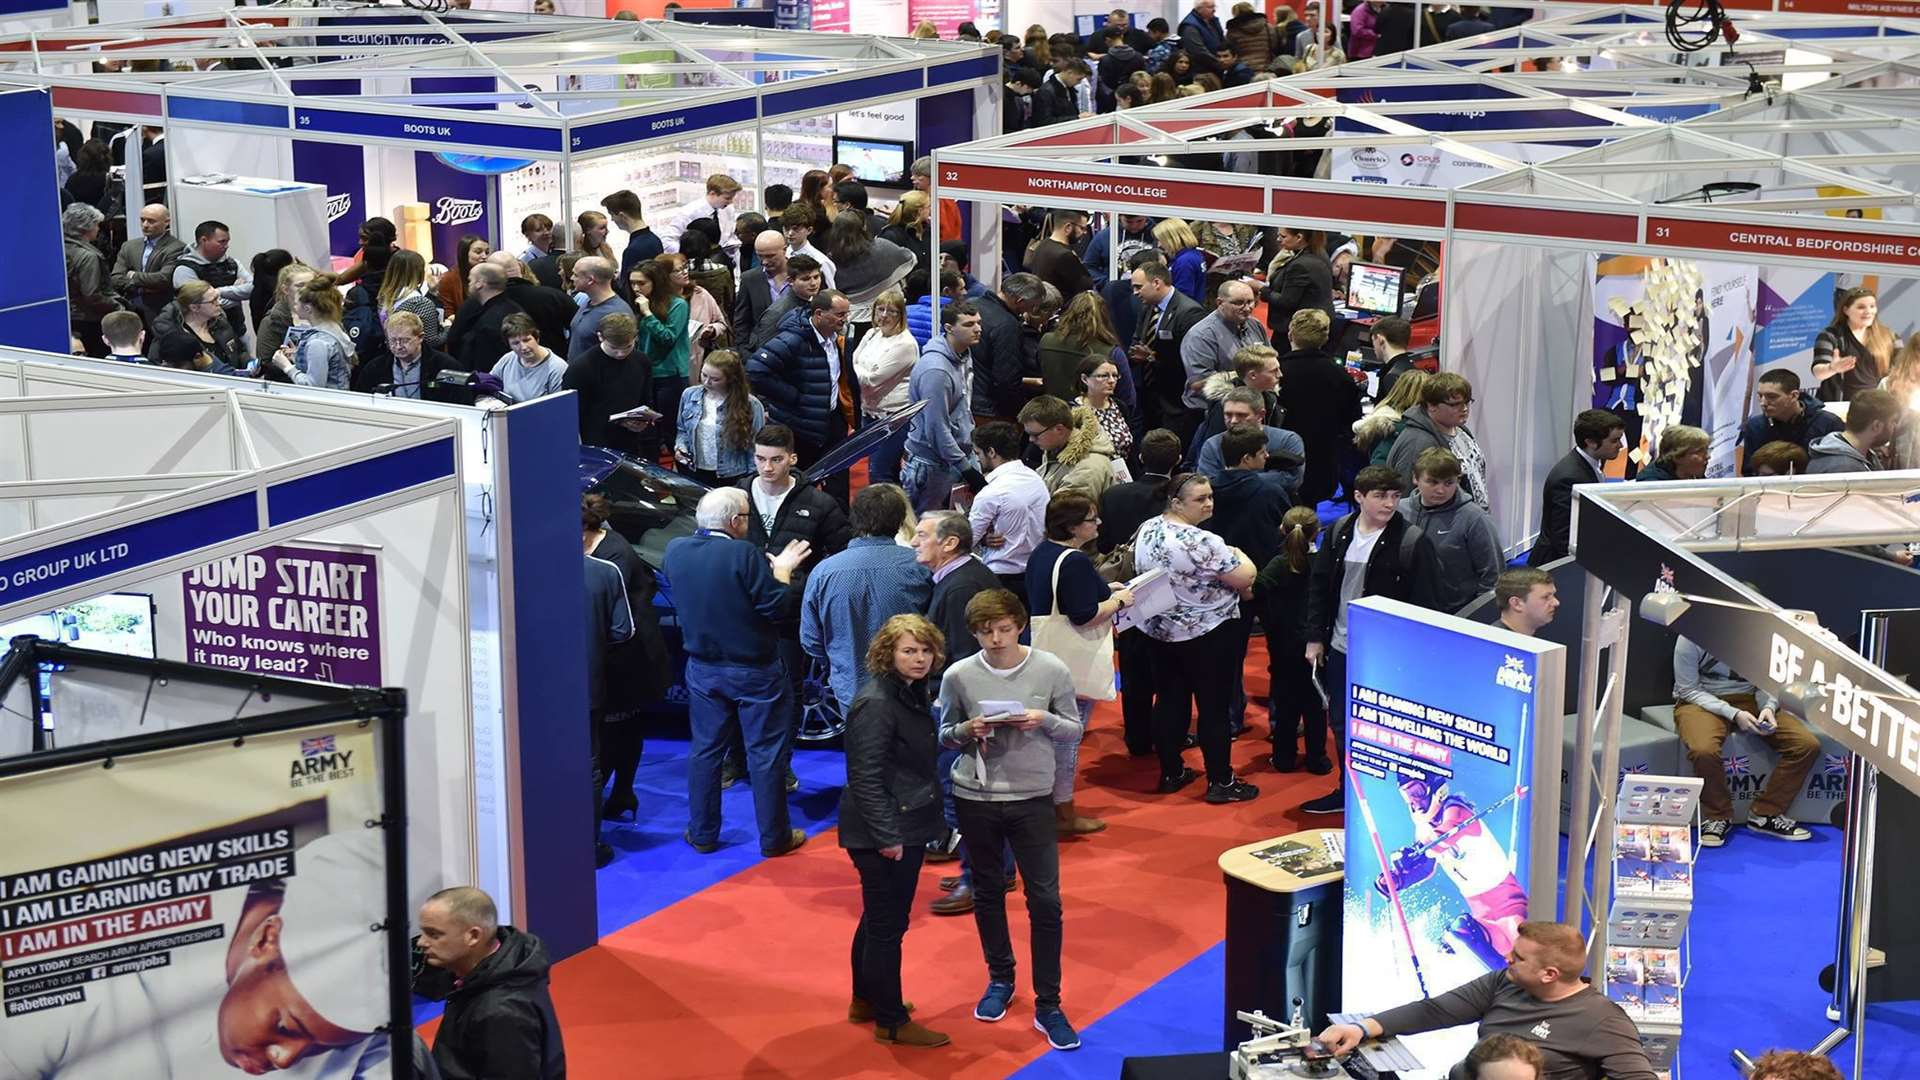 The National Apprenticeships Show will take place at the Kent Event Centre in Detling from Tuesday to Wednesday, March 20 to 21